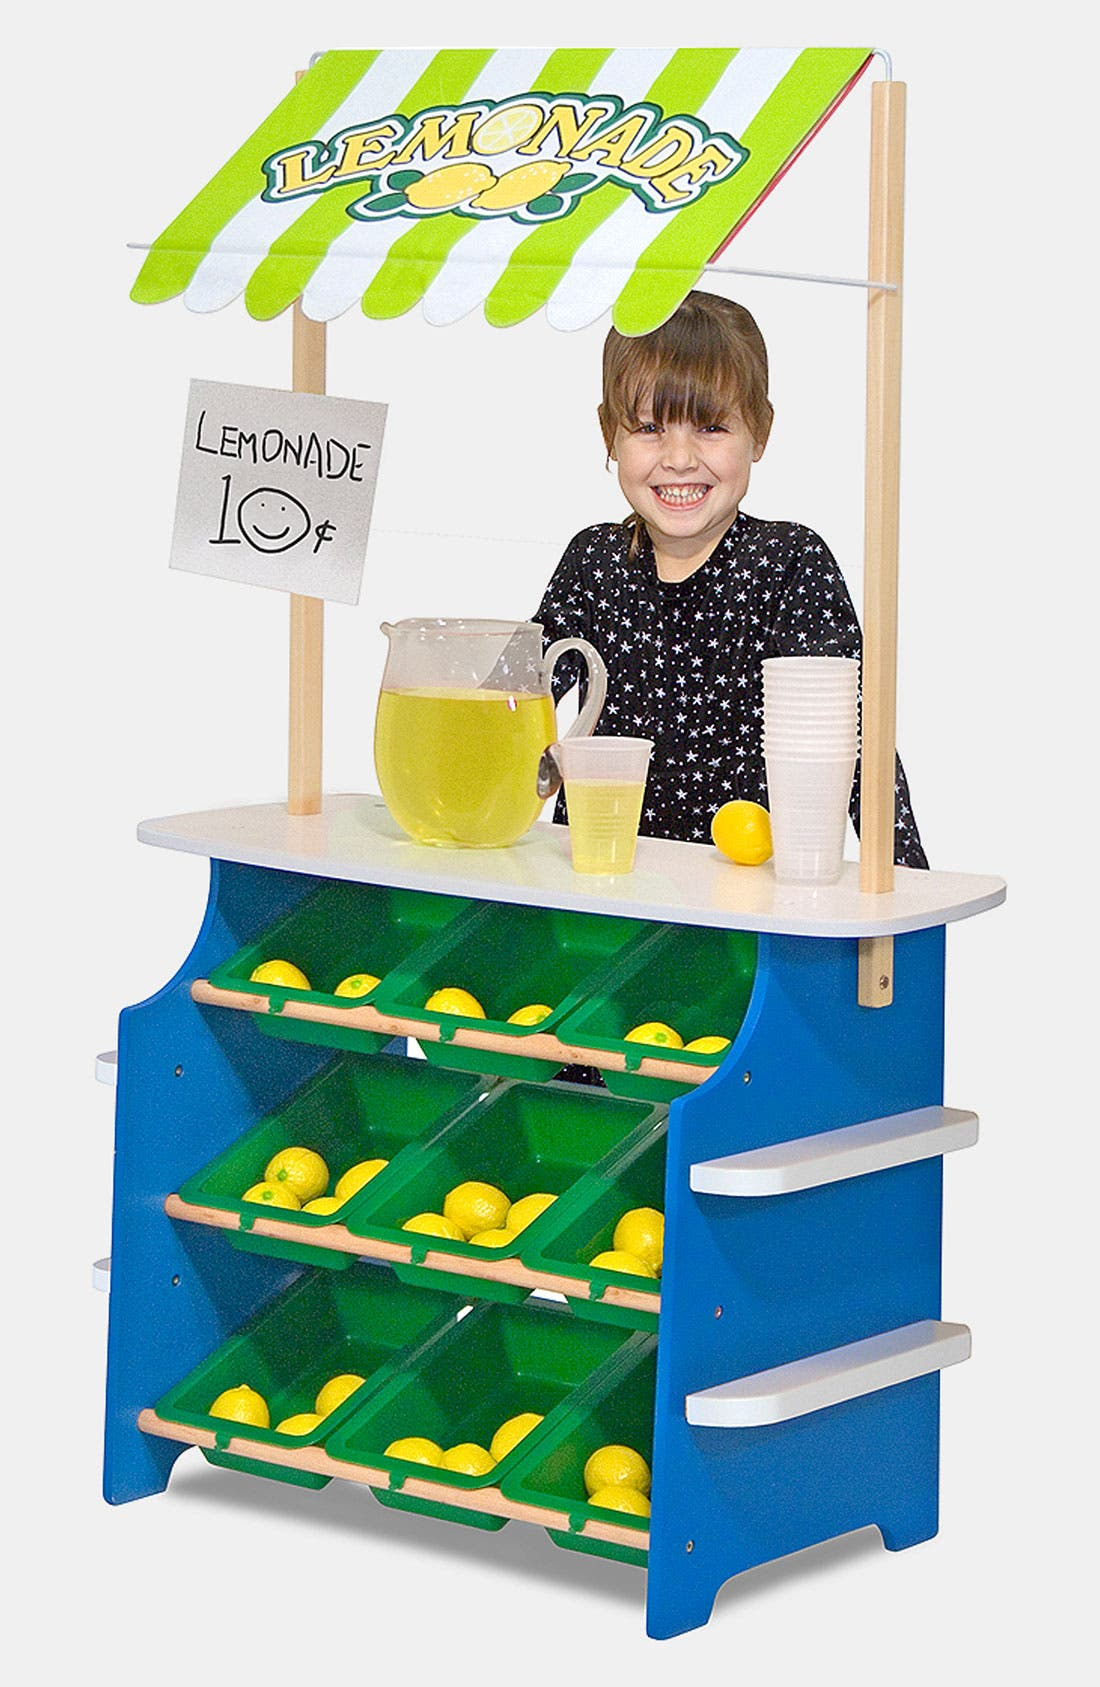 Melissa u0026 Doug Play Time Convertible Grocery Store u0026 Lemonade Stand (Online ...  sc 1 st  Nordstrom & Melissa u0026 Doug Toys | Nordstrom